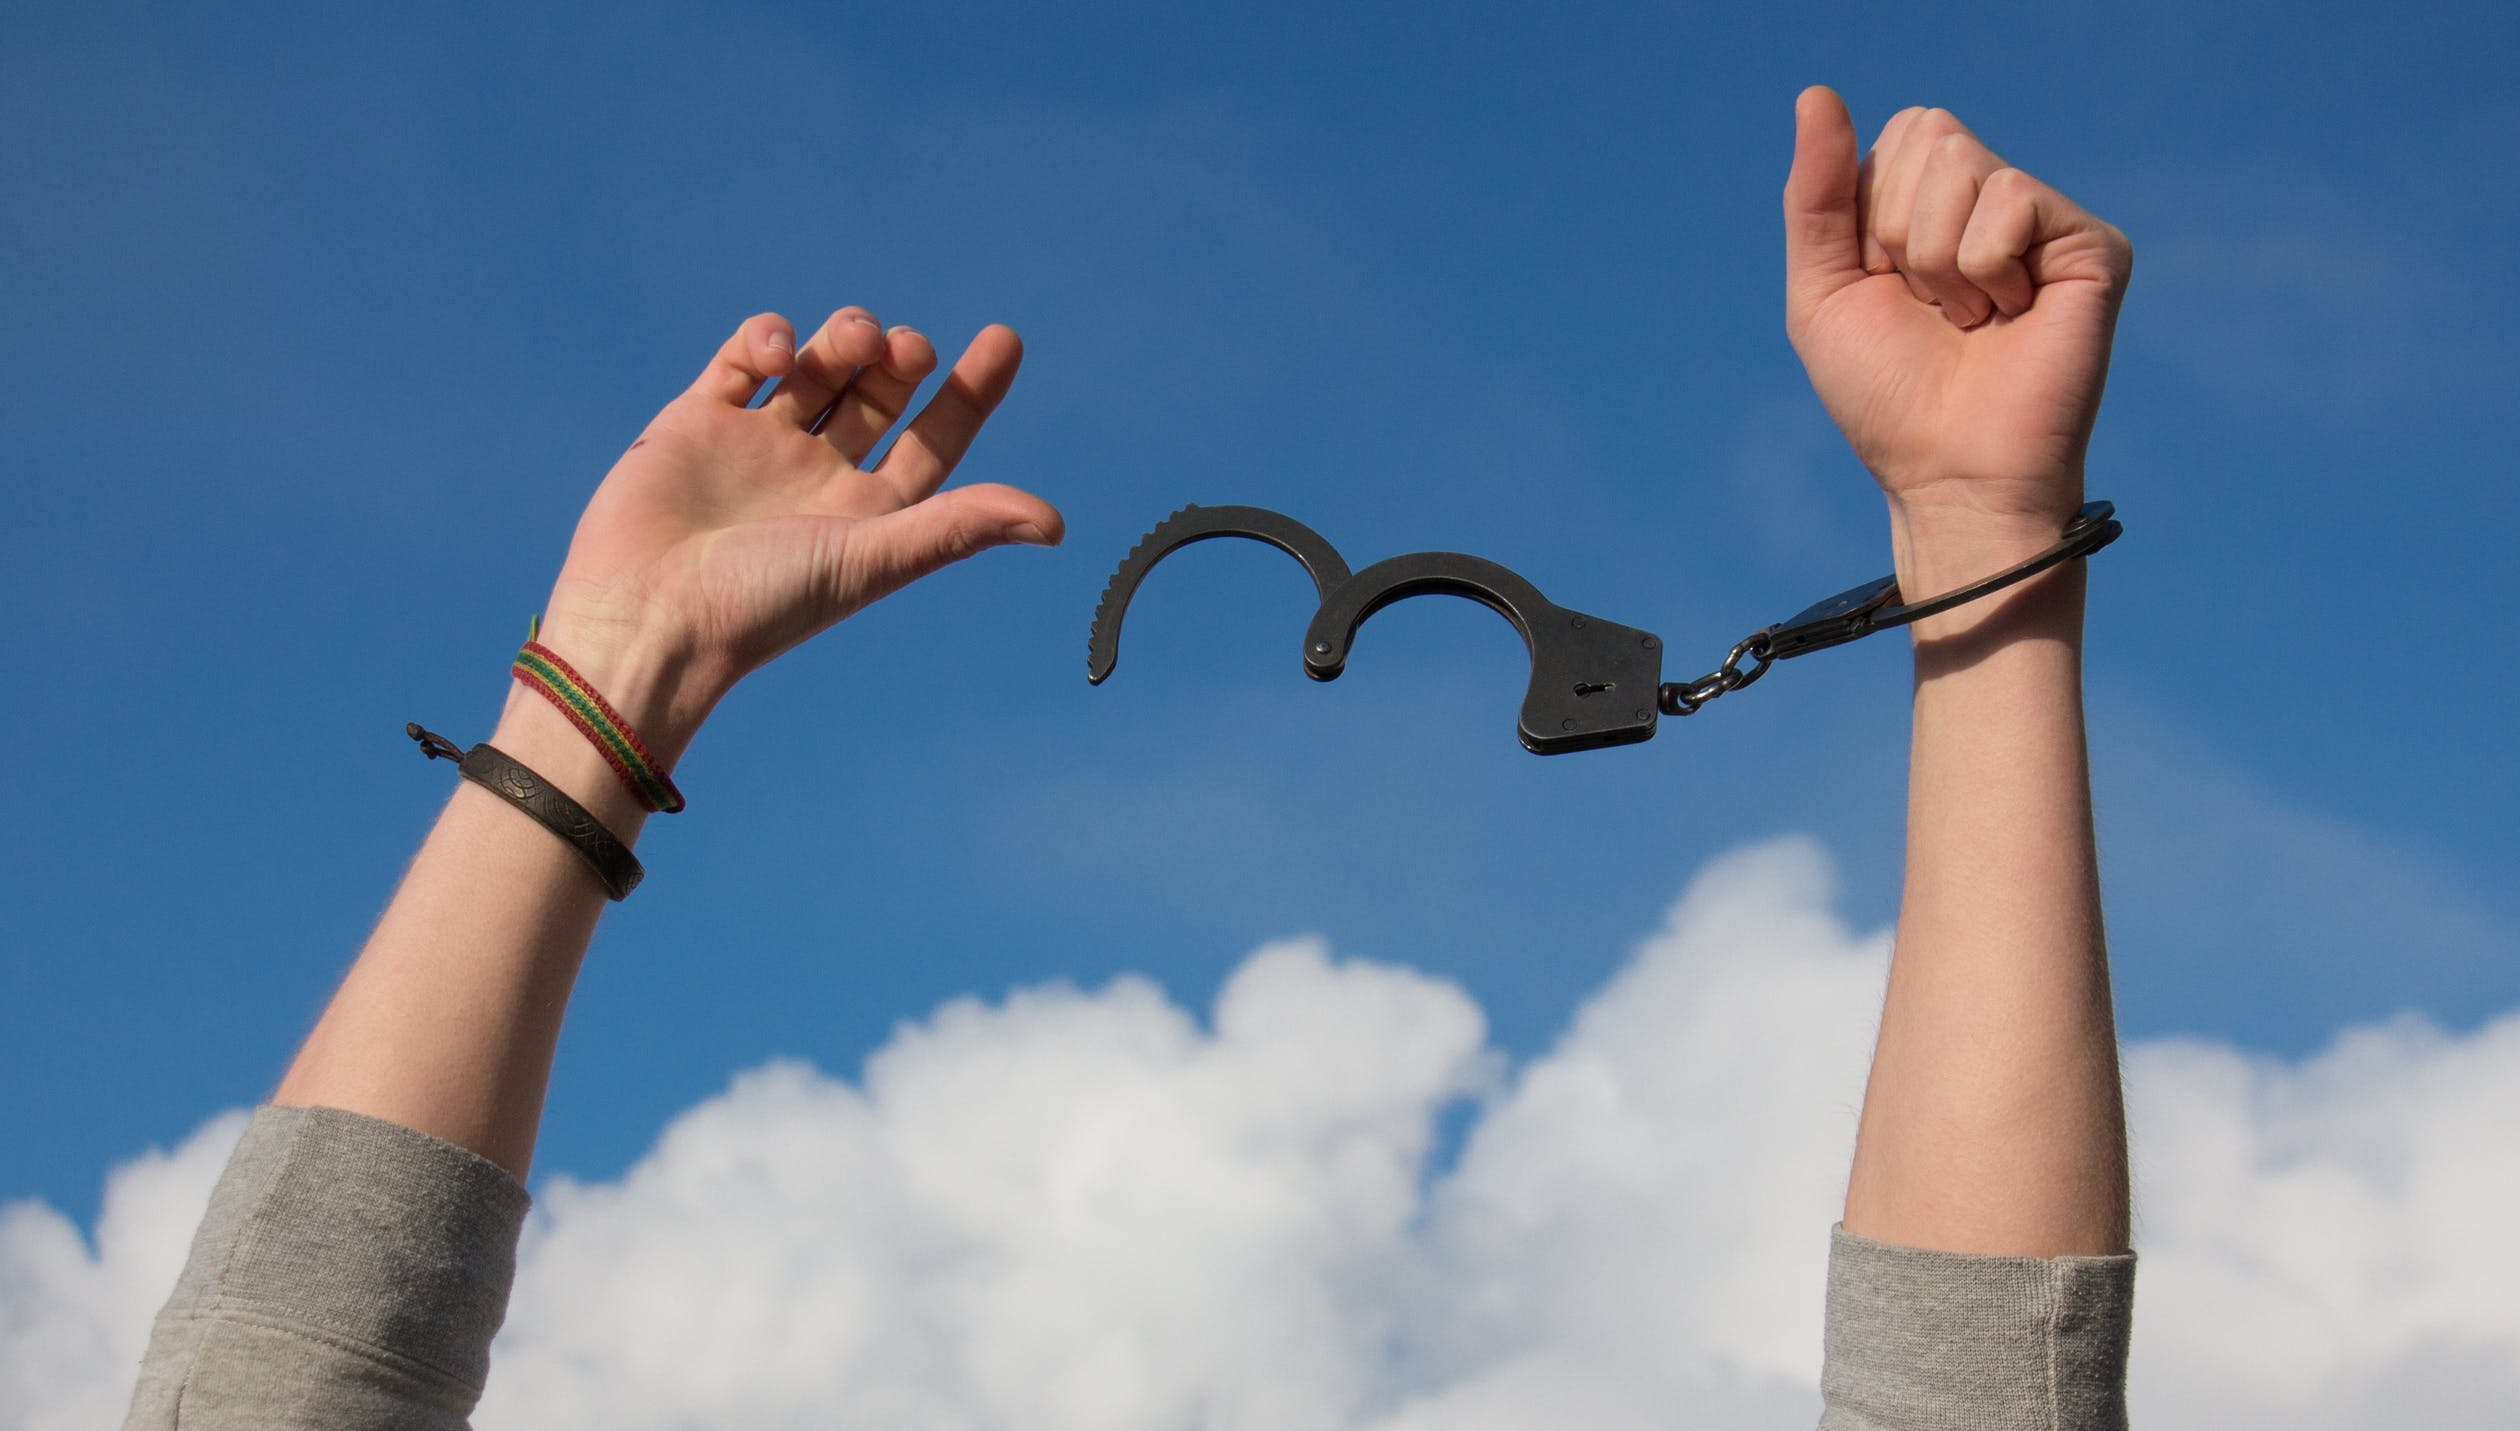 A person out of handcuffs - free to do other things, which is one of the reasons for outsourcing logistics